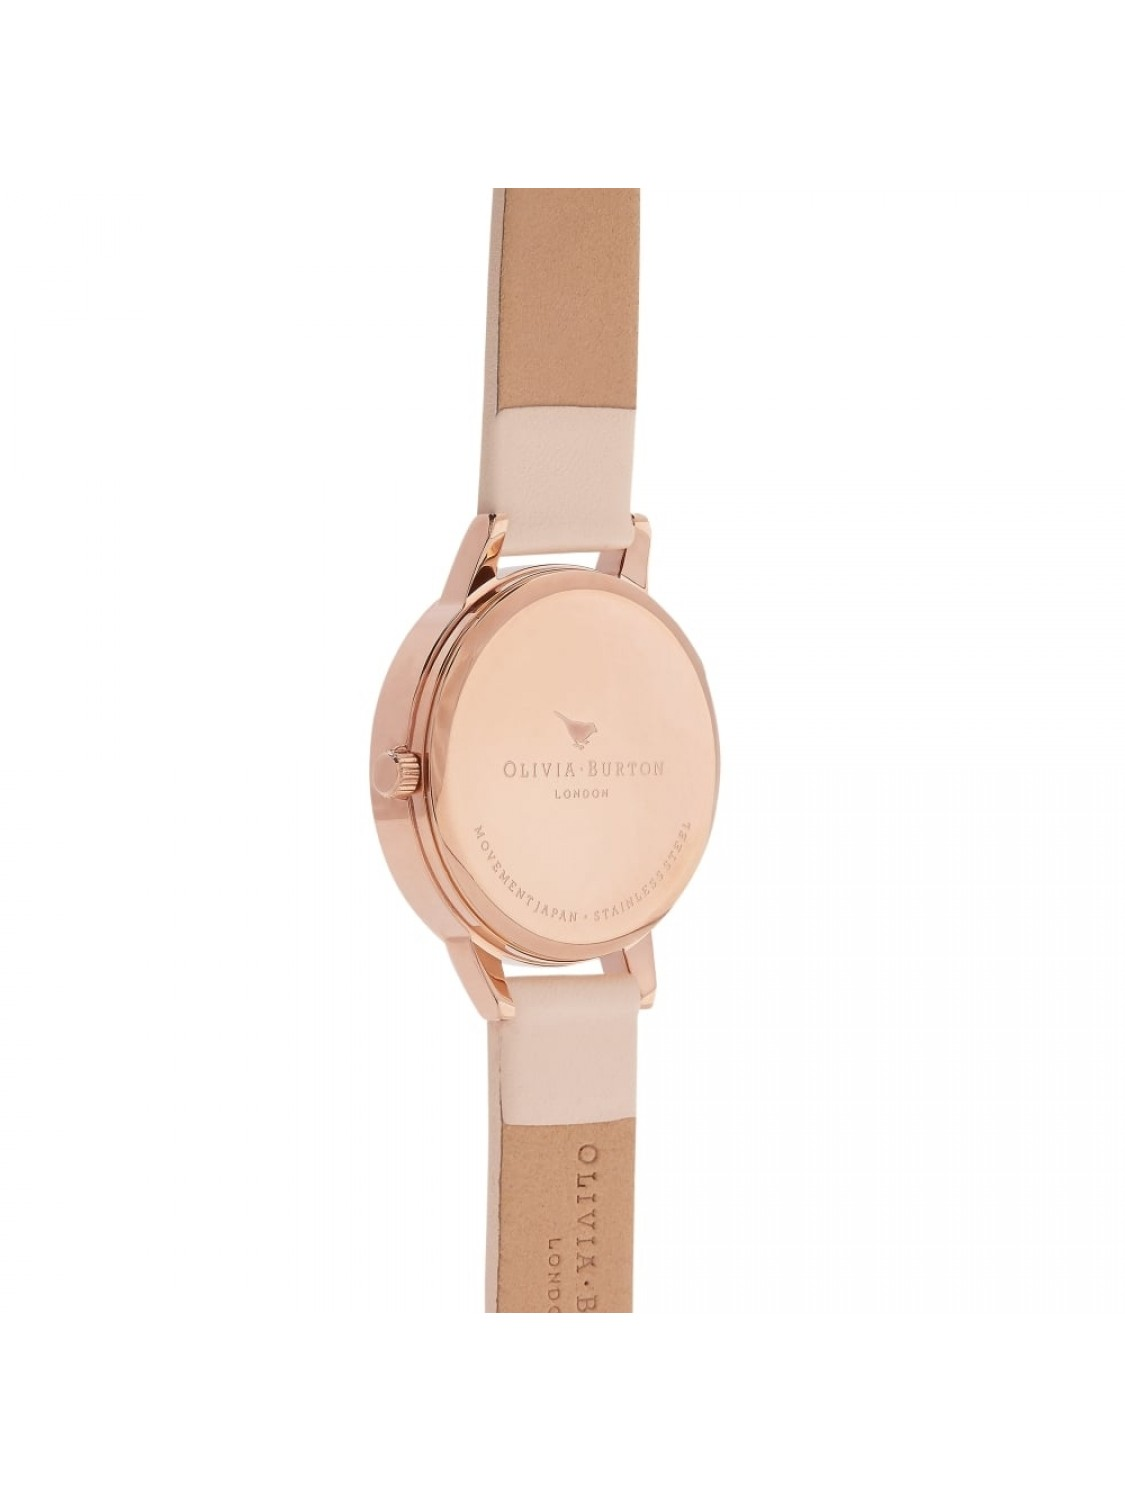 Olivia Burton Queen Bee T-Bar Nude Peach and Rose Gold-316